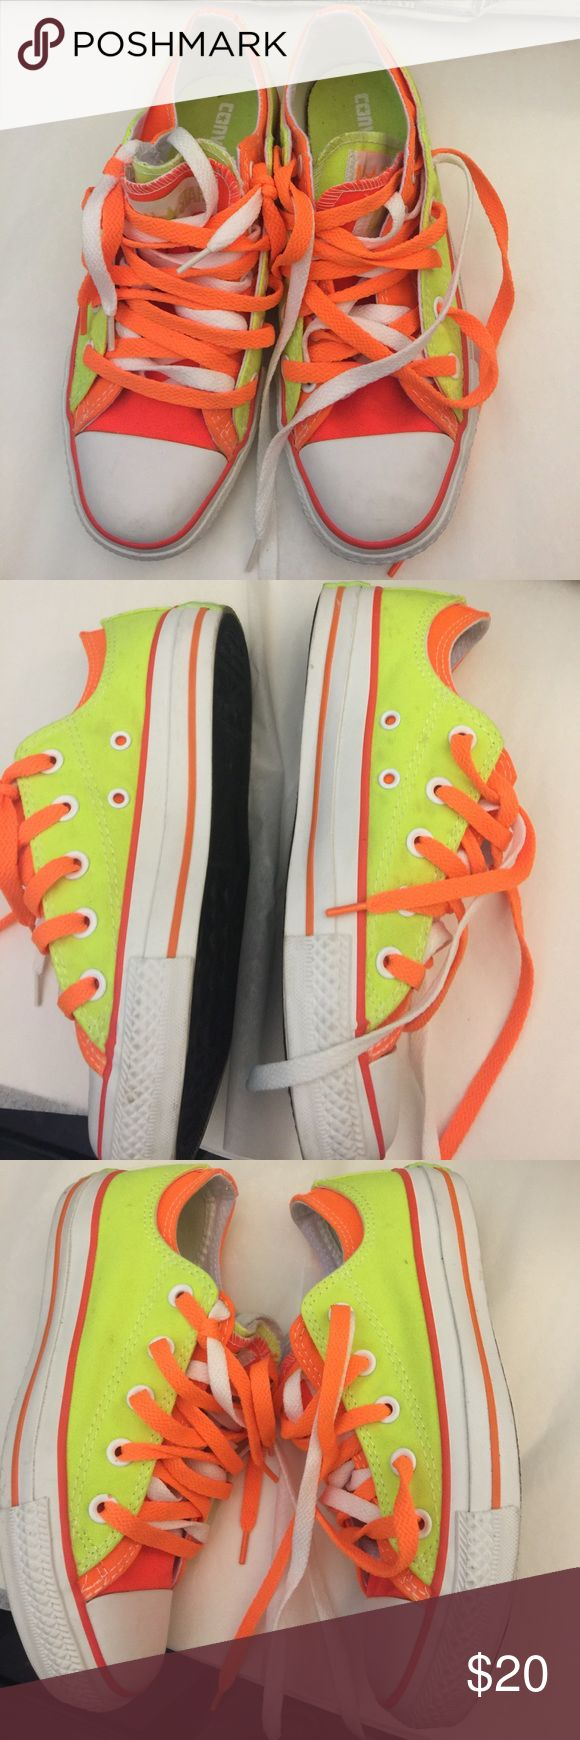 "Neon converse Neon orange and highlighter converse sneakers doubled lace.  Purchased and worn once for a ""neon party"". Shoes show signs of wear on inside fabric and pictured.  No holes.  Can probably be washed and look new just don't have a use for them anymore.  No box Converse Shoes Sneakers"